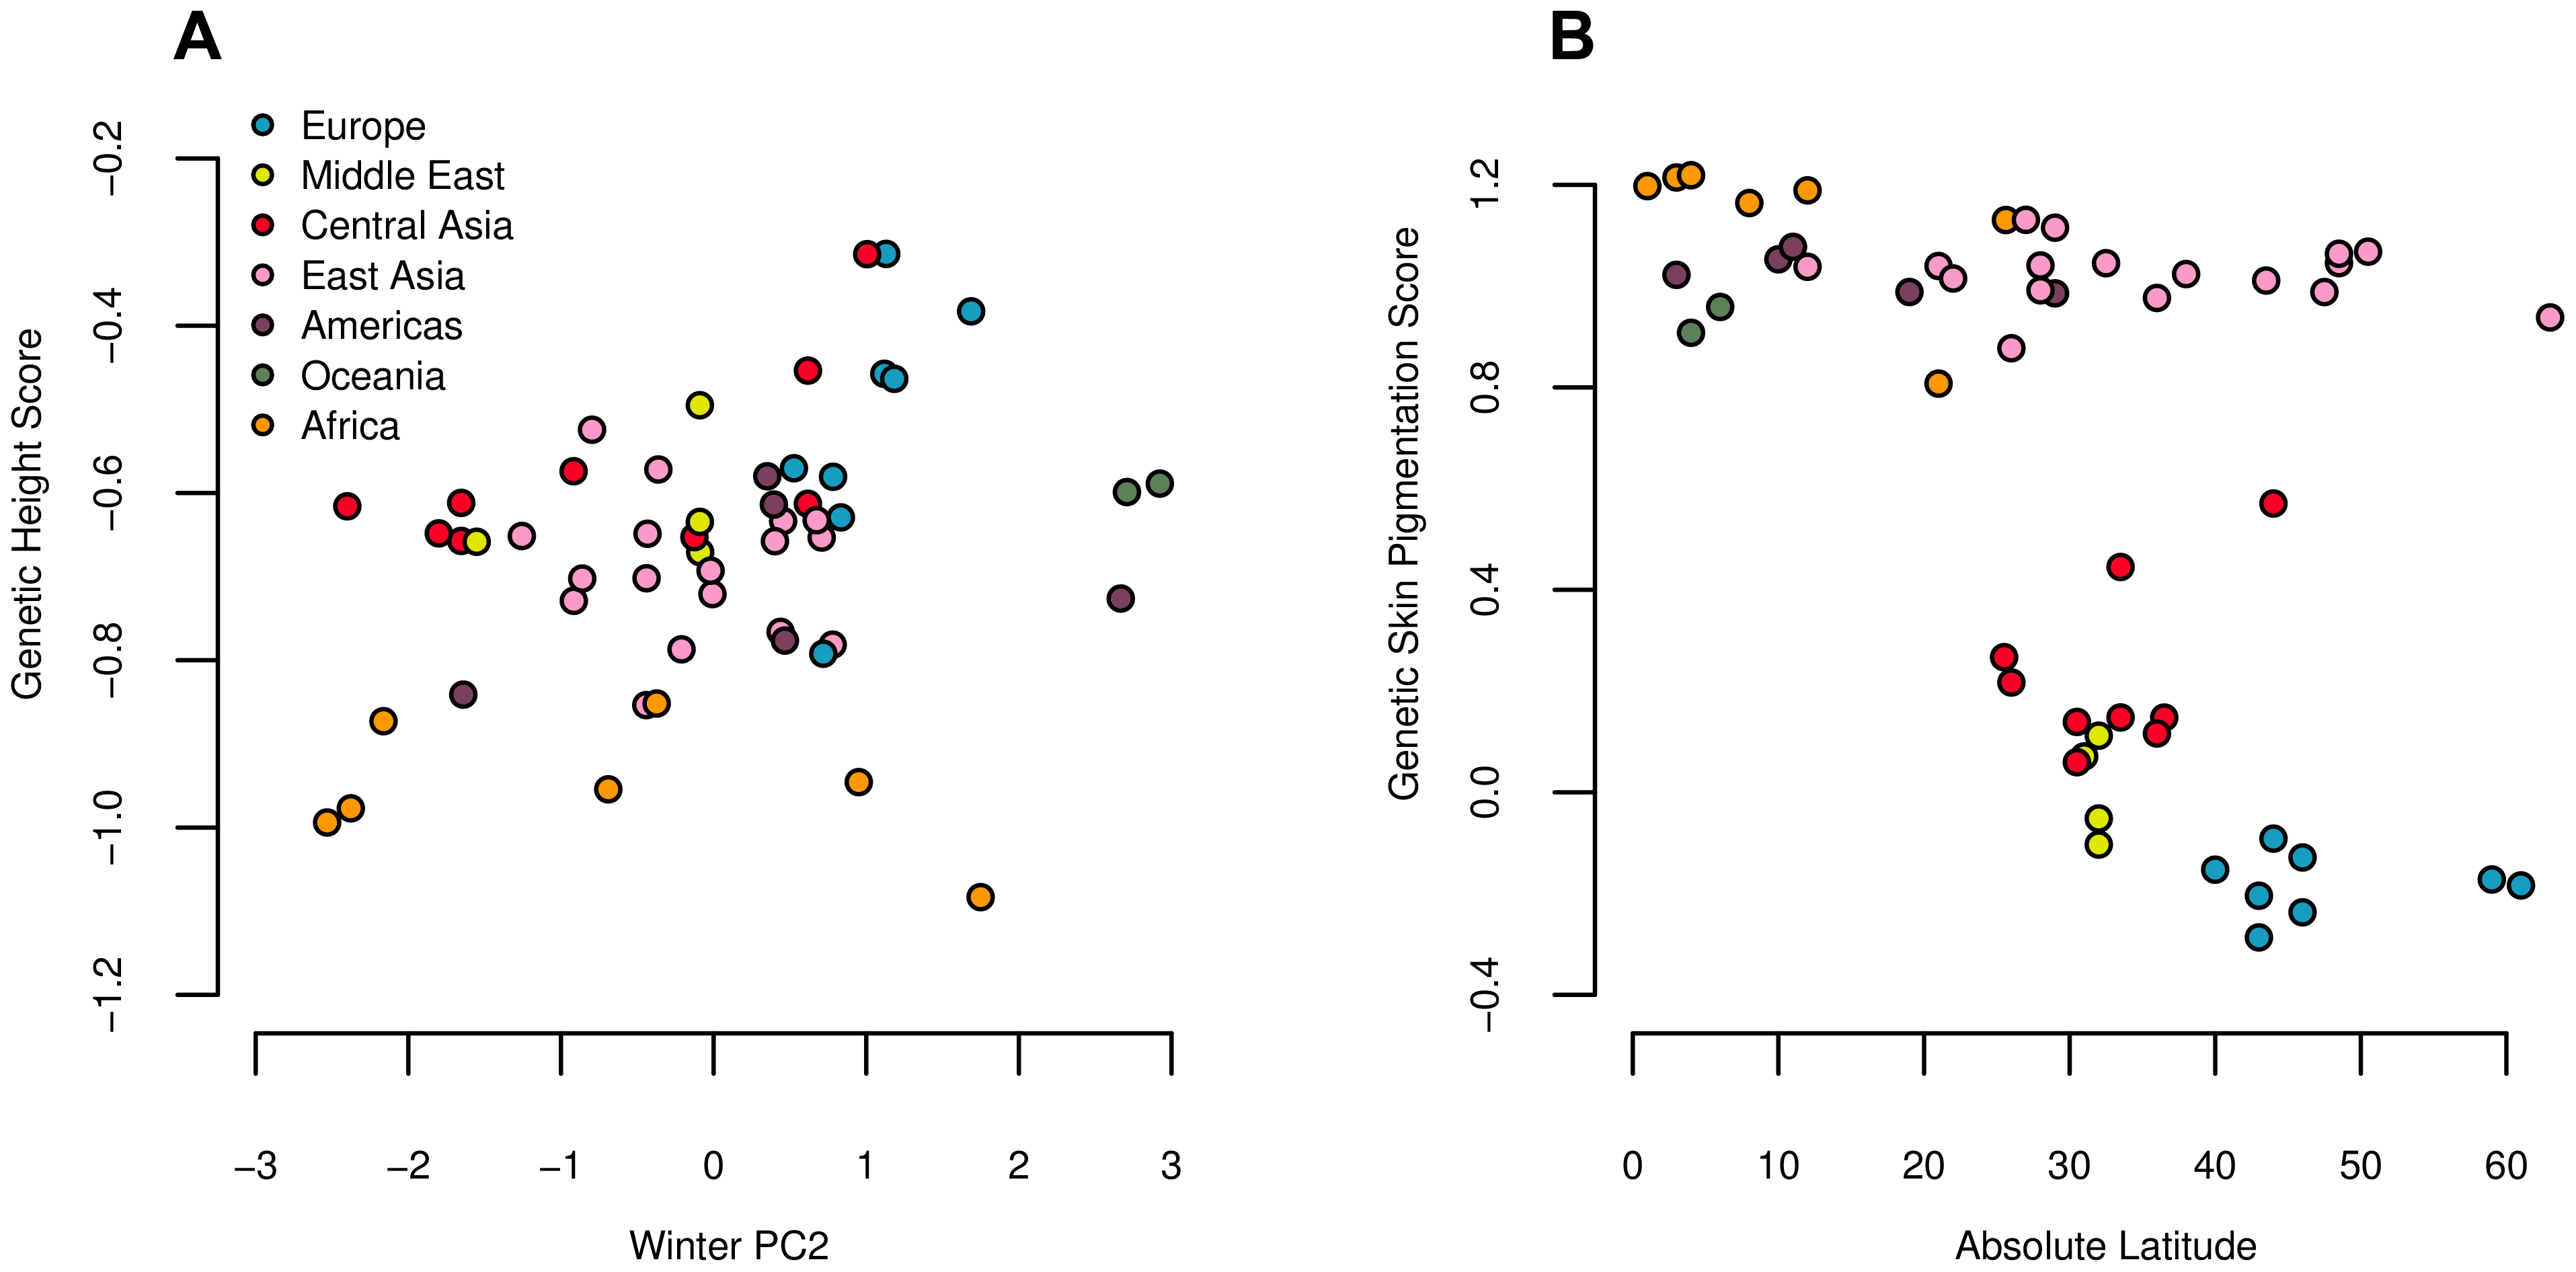 Estimated genetic height (A) and skin pigmentation score (B) plotted against winter PC2 and absolute latitude respectively.